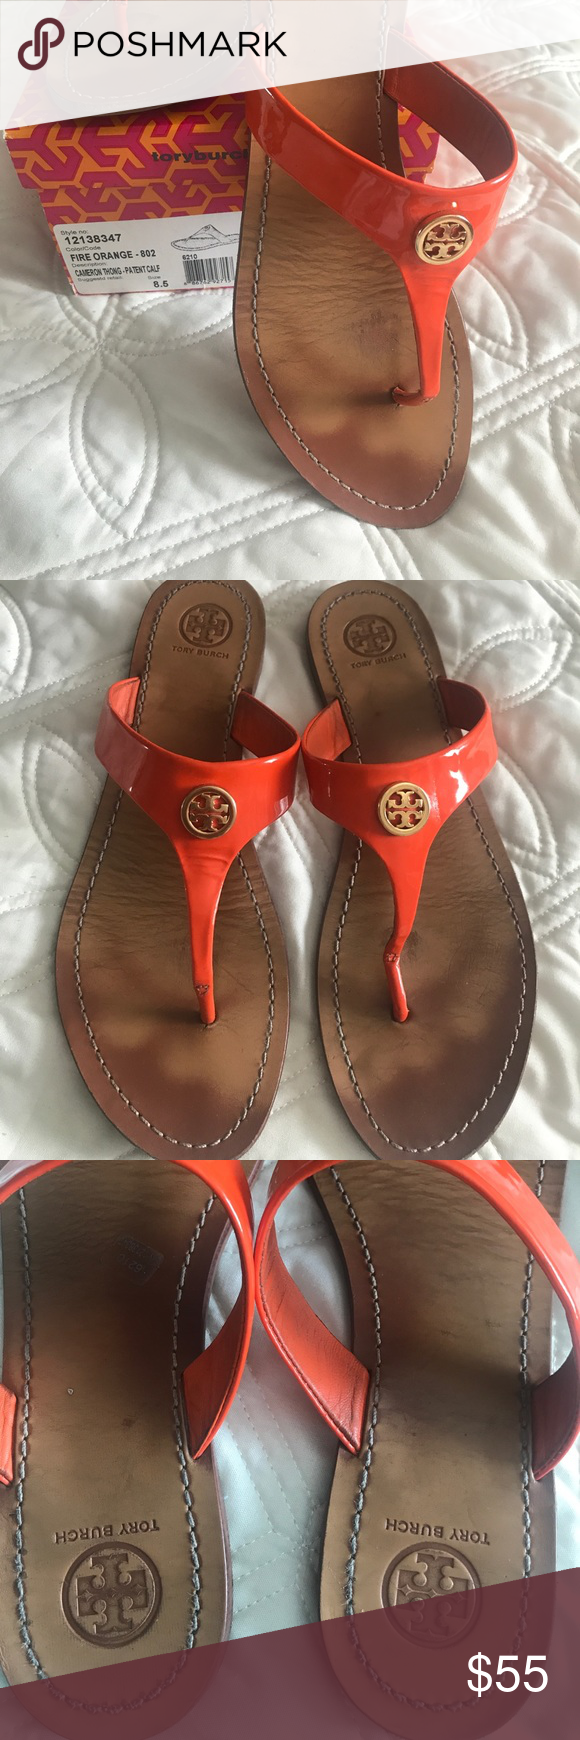 252cd6a32ce Tory Burch 8.5 orange patent Cameron thong sandal In good condition size  8-1 2 orange patent leather thong sandal. Original box included.